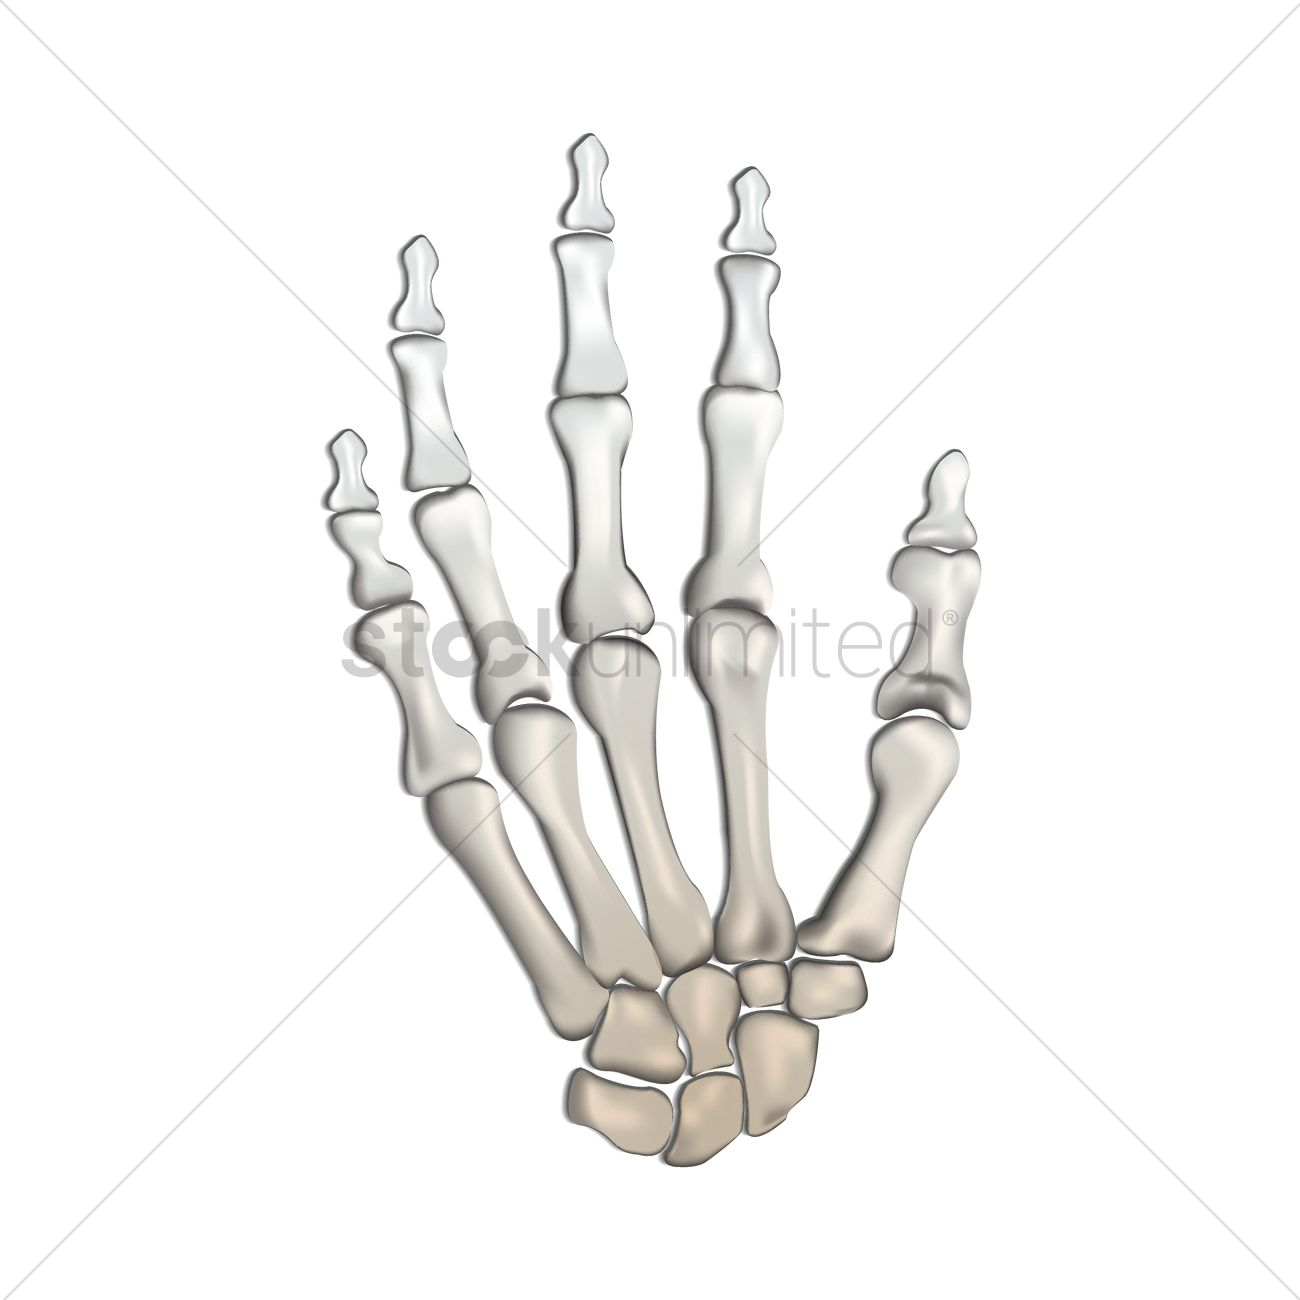 wrist and hand unlabeled diagram water heater timer wiring bones of human vector image 1815224 stockunlimited